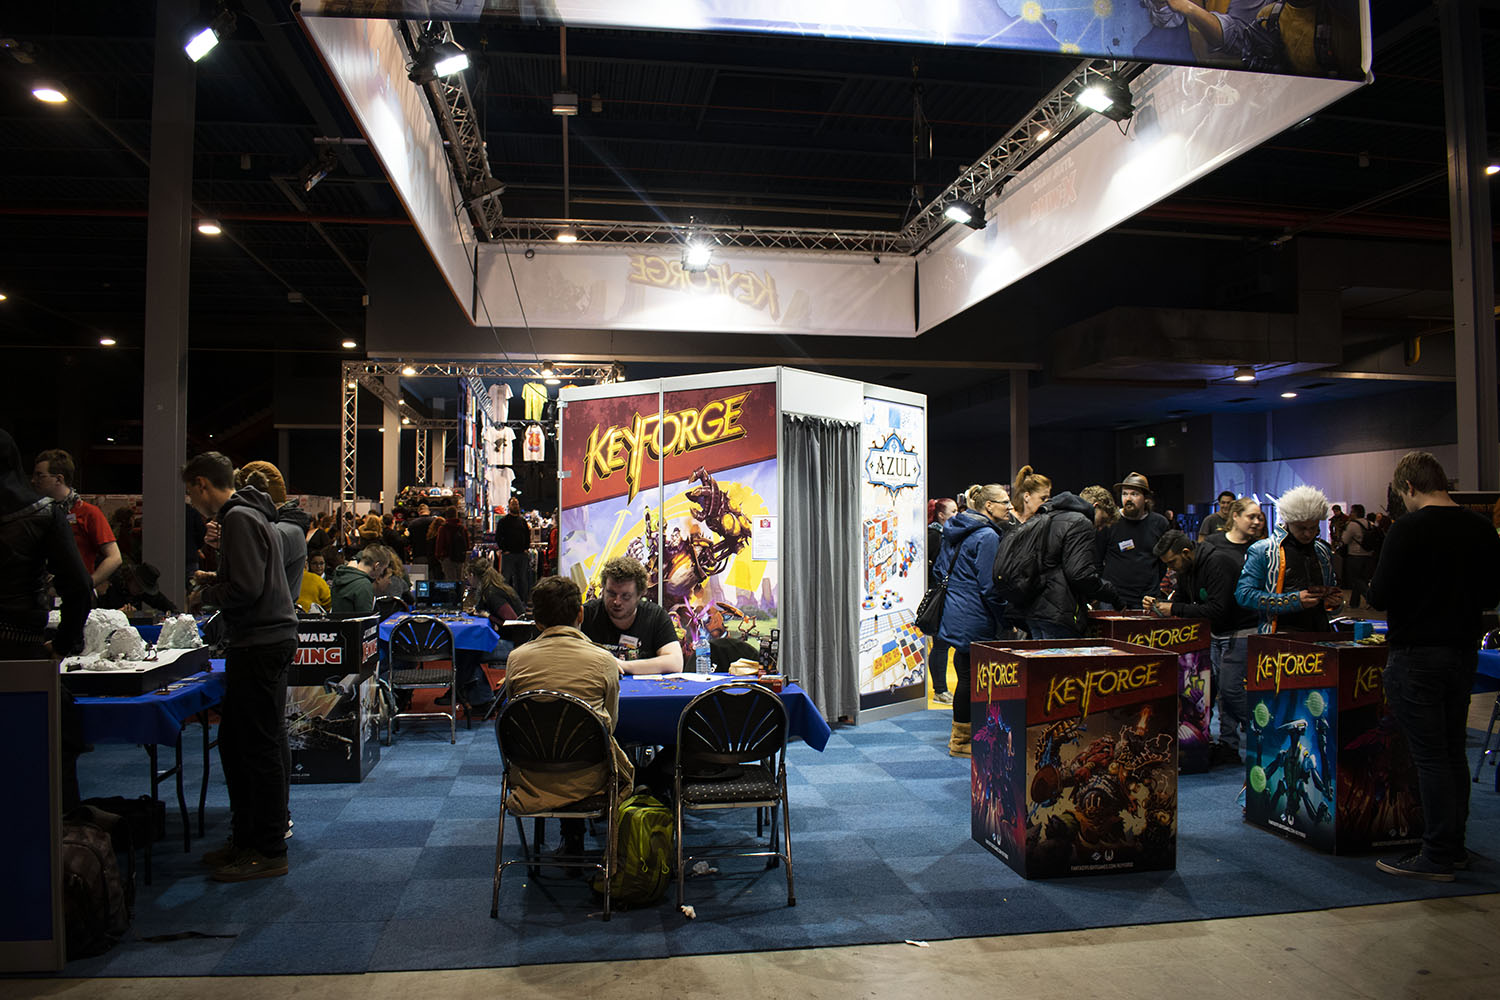 Fotoreportage: Dutch Comic Con Winter Edition 2018 Keyforge